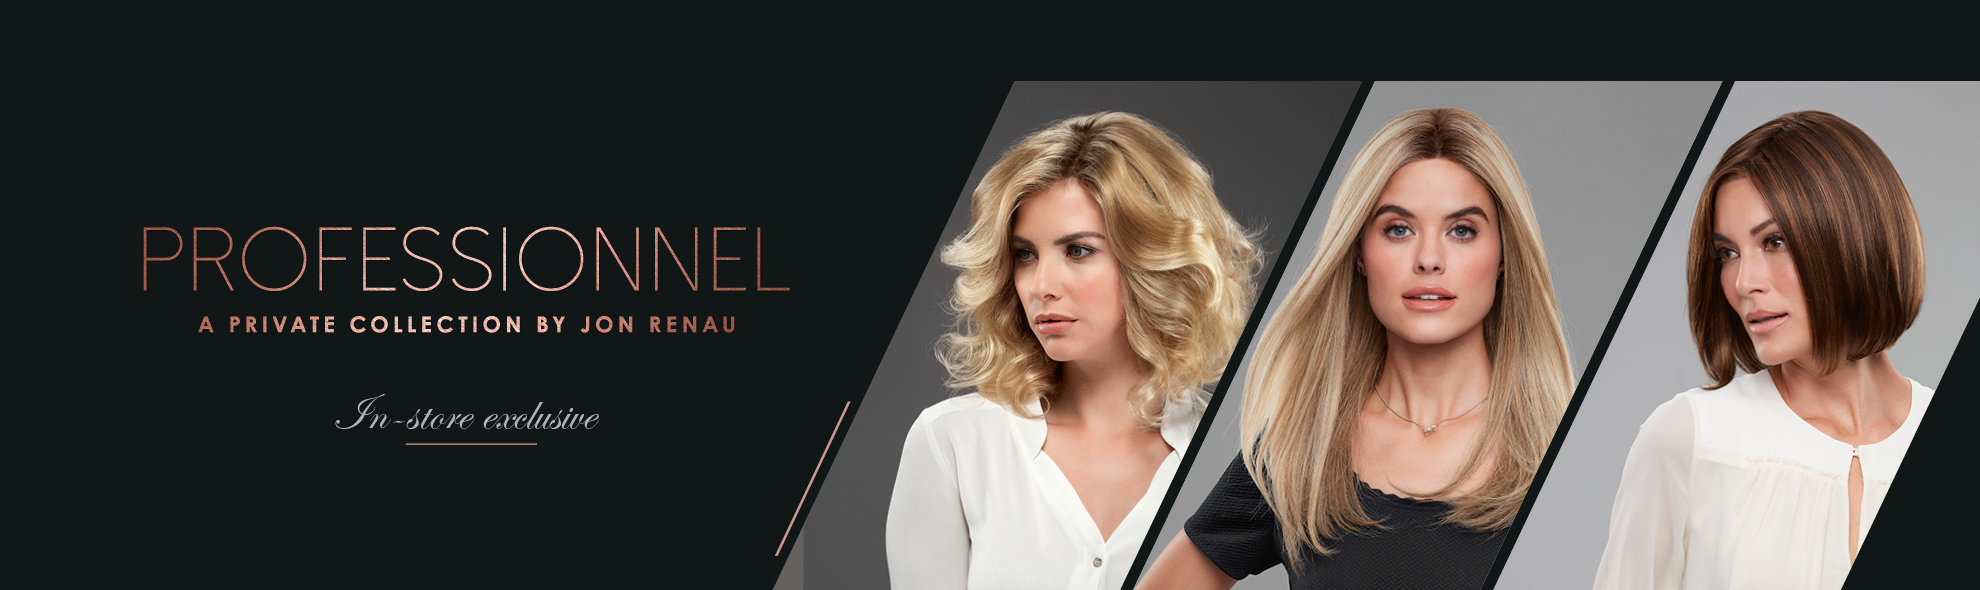 Jon Renau professionnel collection in store only at aspire hair